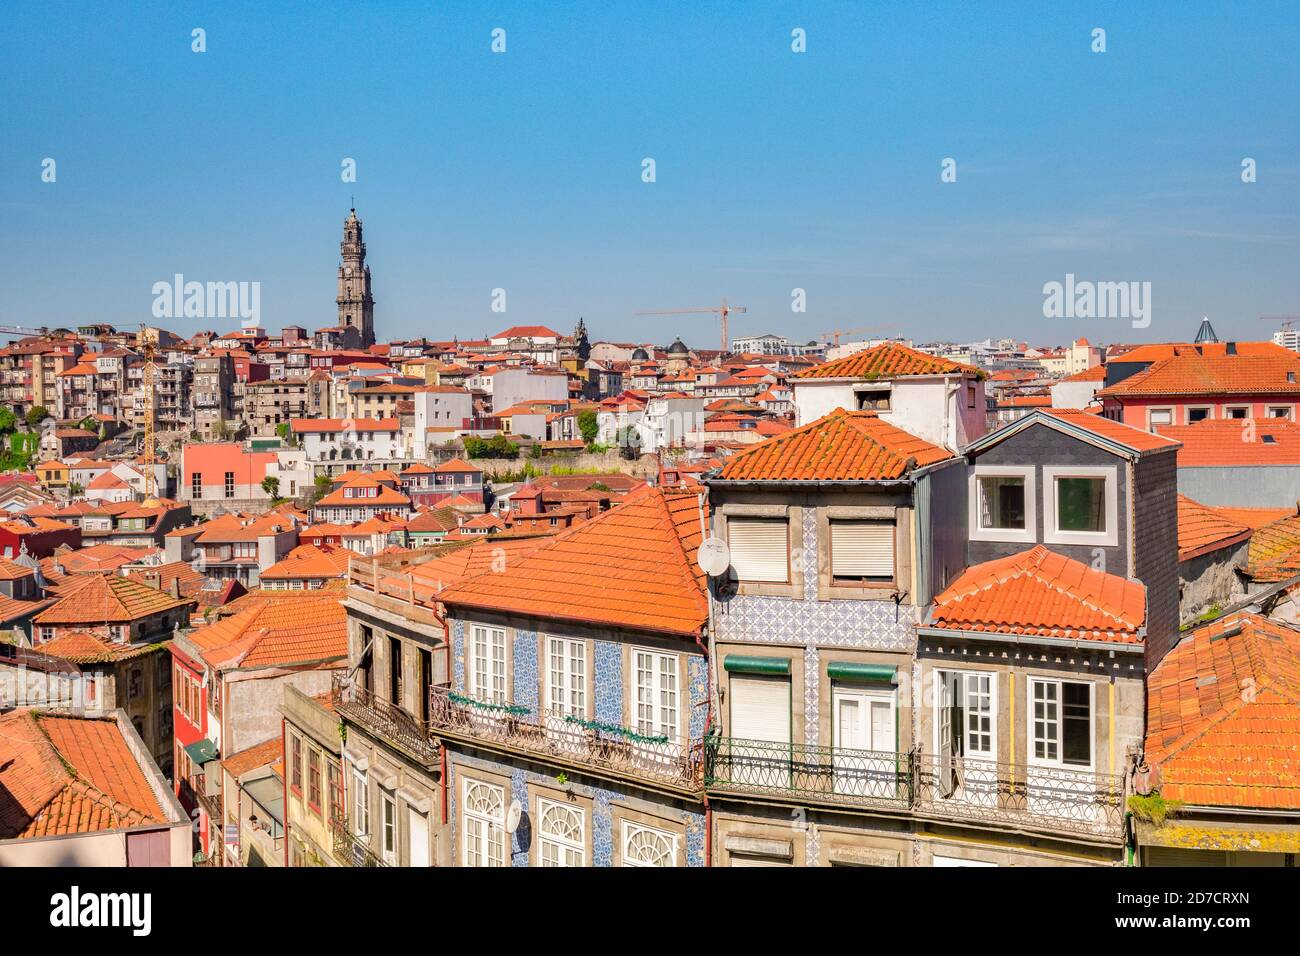 View across the tiled roofs of Porto, Portugal, on a fine spring day. The skyline is dominated by the tower of the Igreja dos Clérigos, the Church of Stock Photo